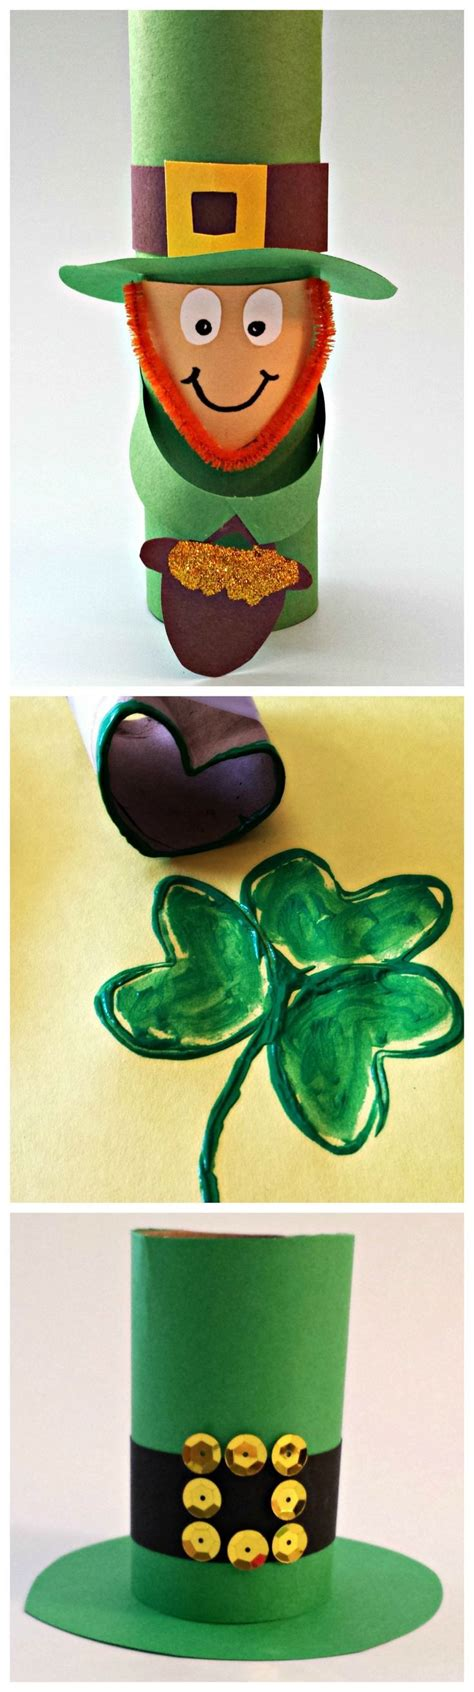 leprechaun toilet paper roll craft 2015 top 20 easy st s day crafts ideas fashion